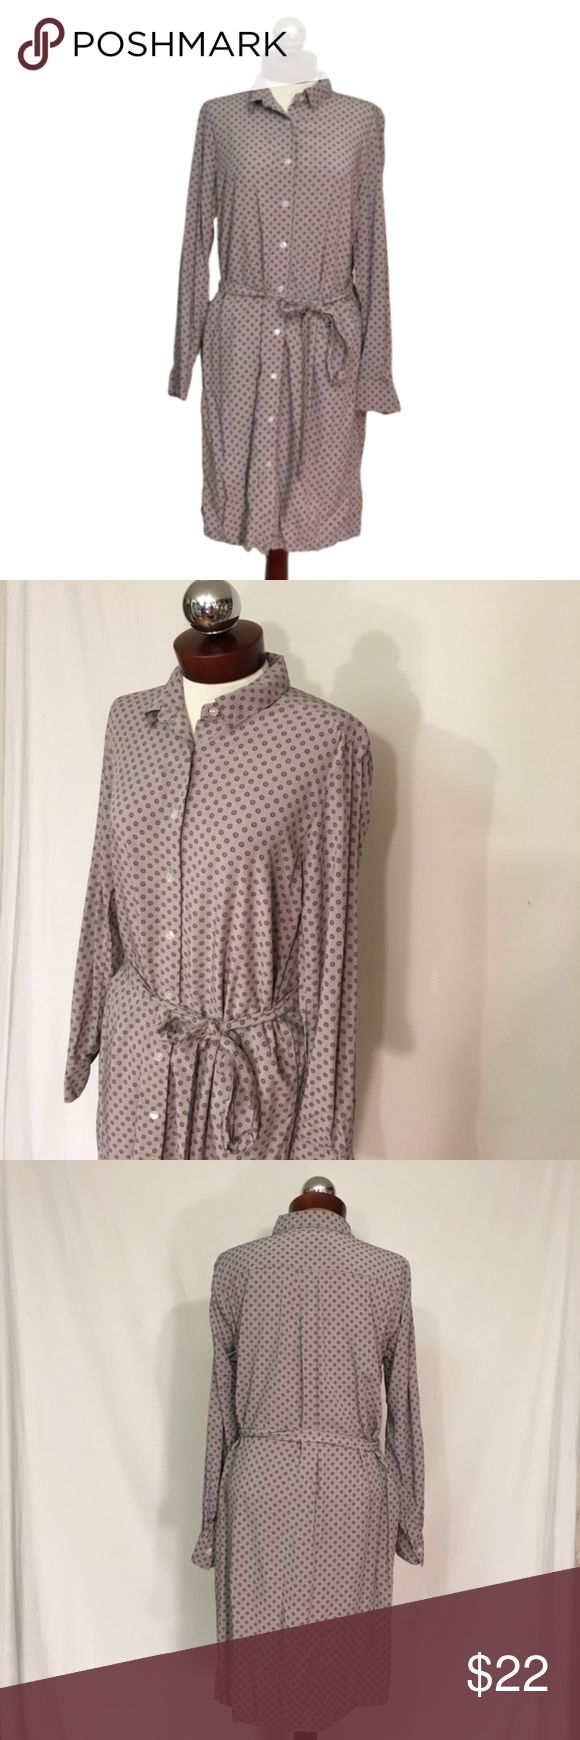 UNIQLO shirt dress printed belted rayon casual M UNIQLO shirt dress printed belted  SIZE M Excellent condition!   Button down front. belted waist. Rayon.   Bust 41 waist 41 hip 49 length 38 Uniqlo Dresses Long Sleeve